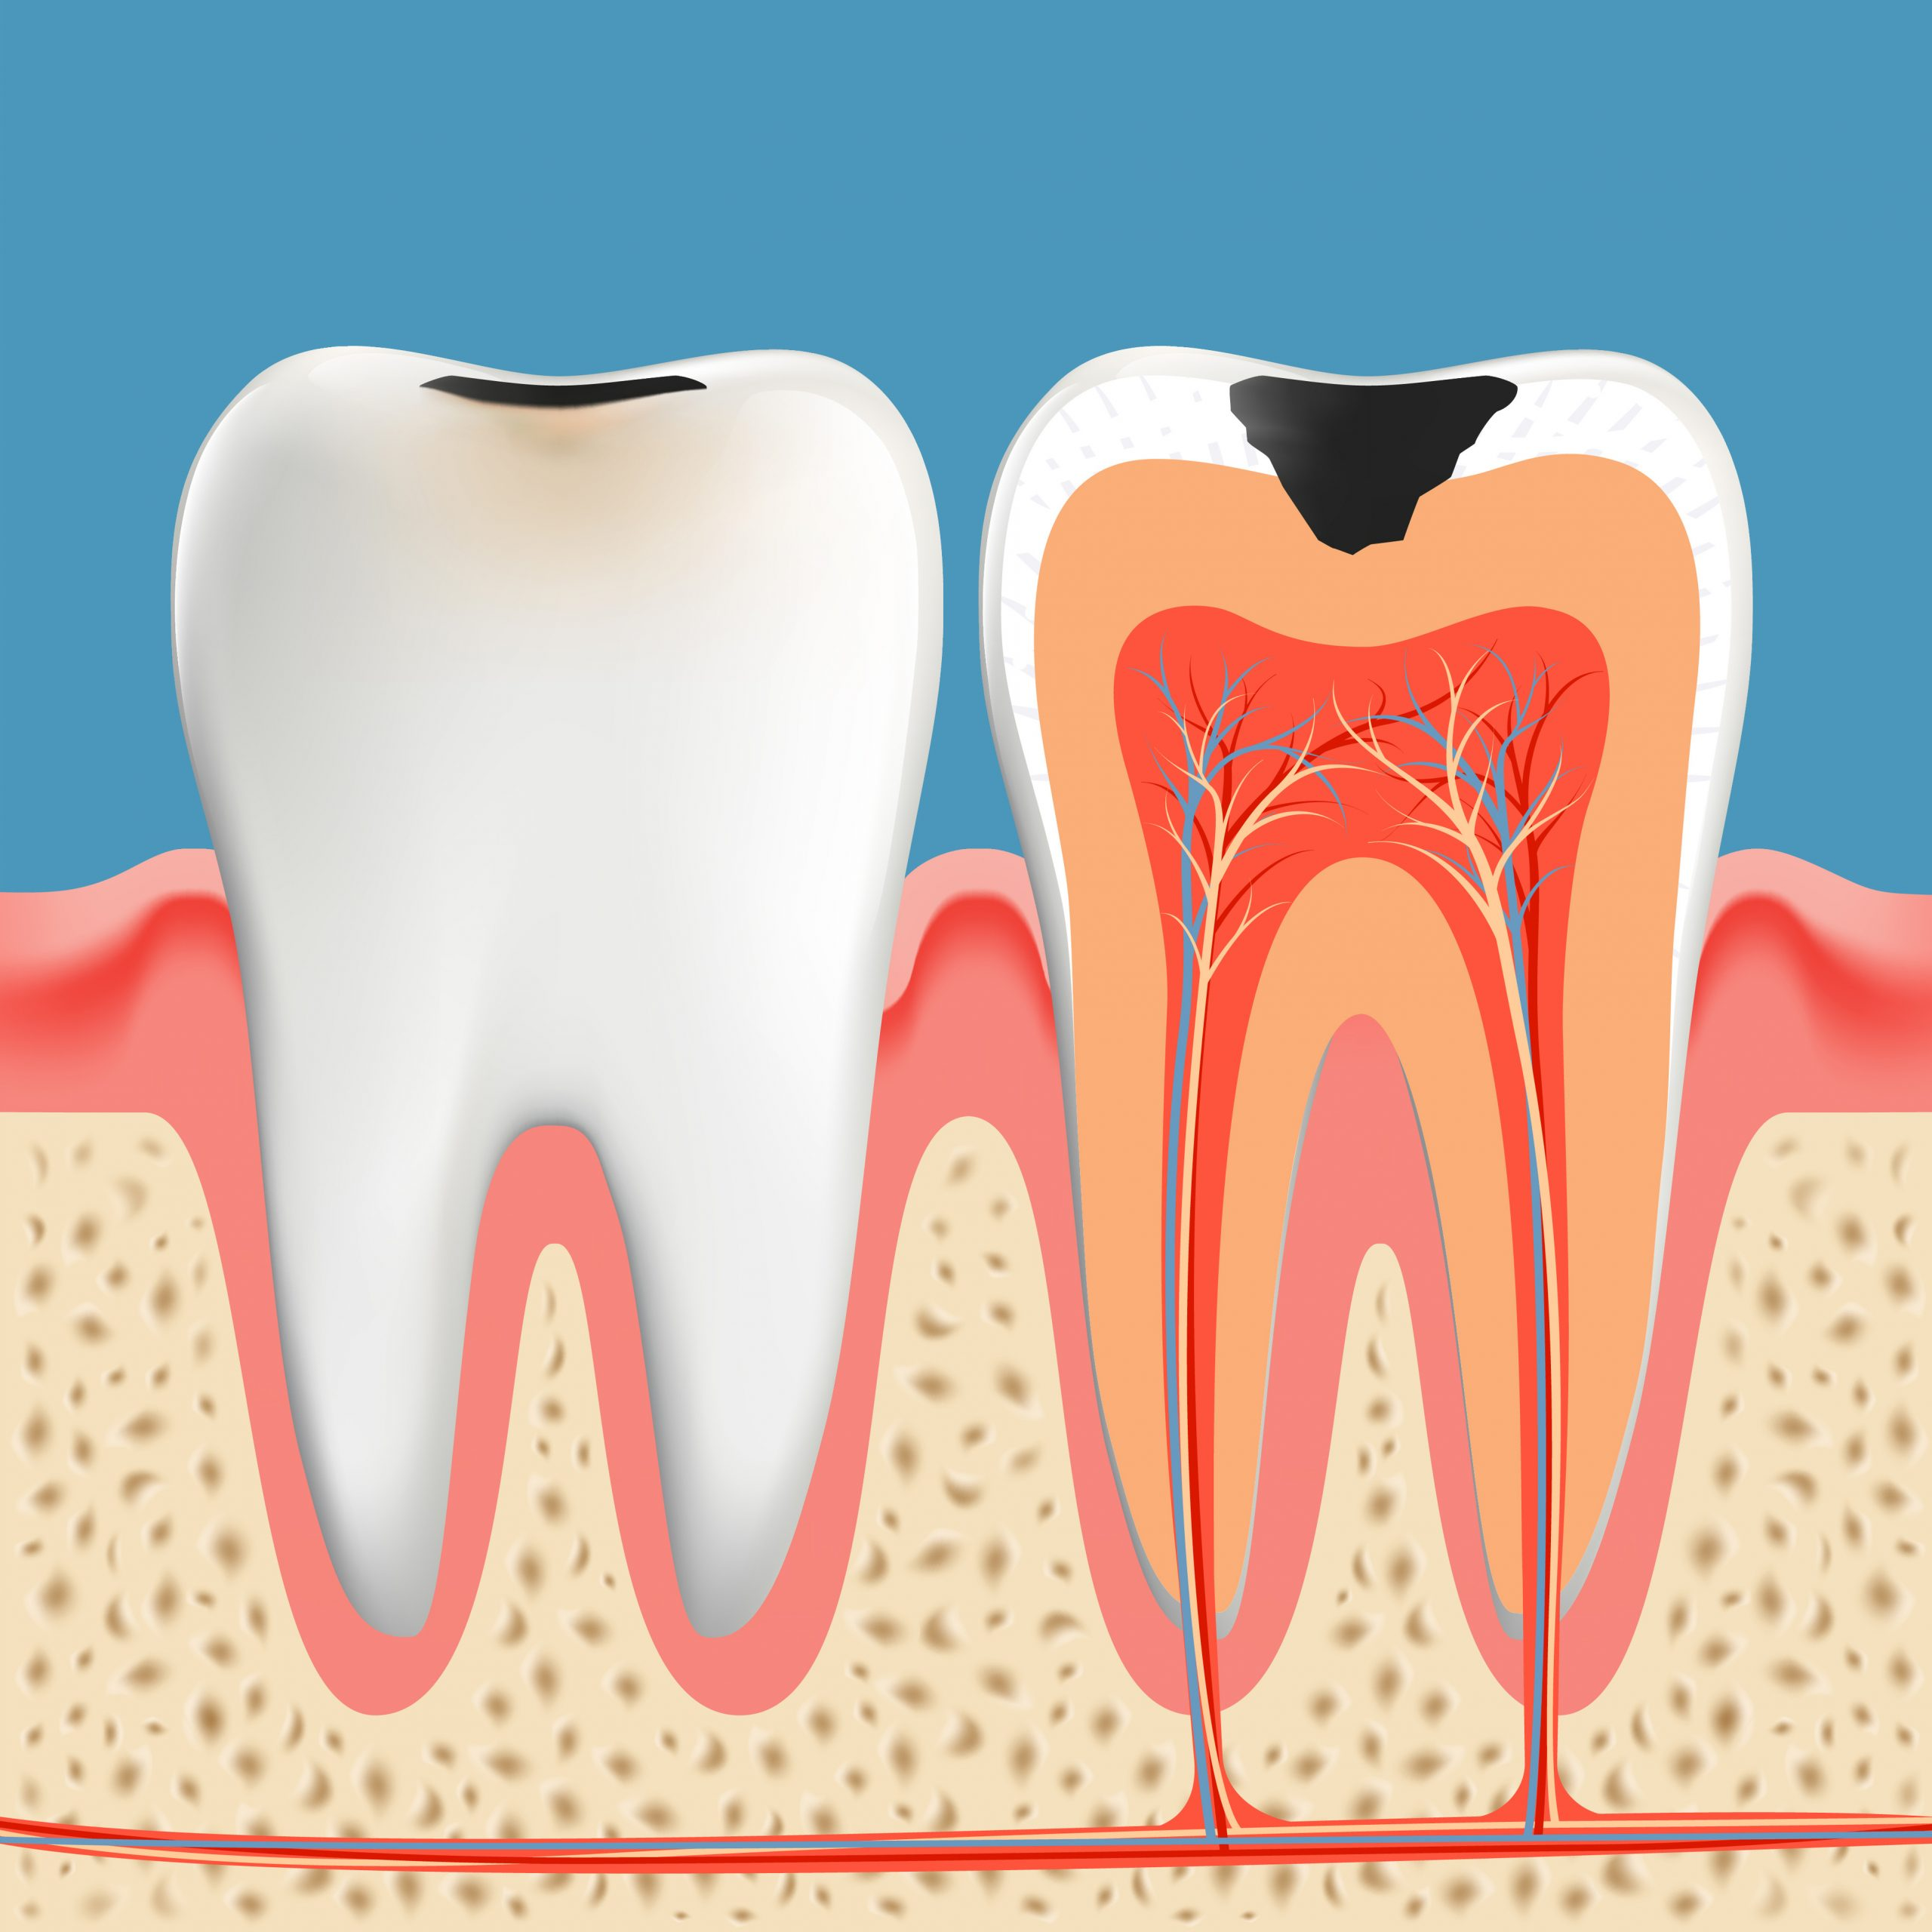 Tooth decay anatomy poster. Enamel and dentin of teeth caries Infection. Vector illustration